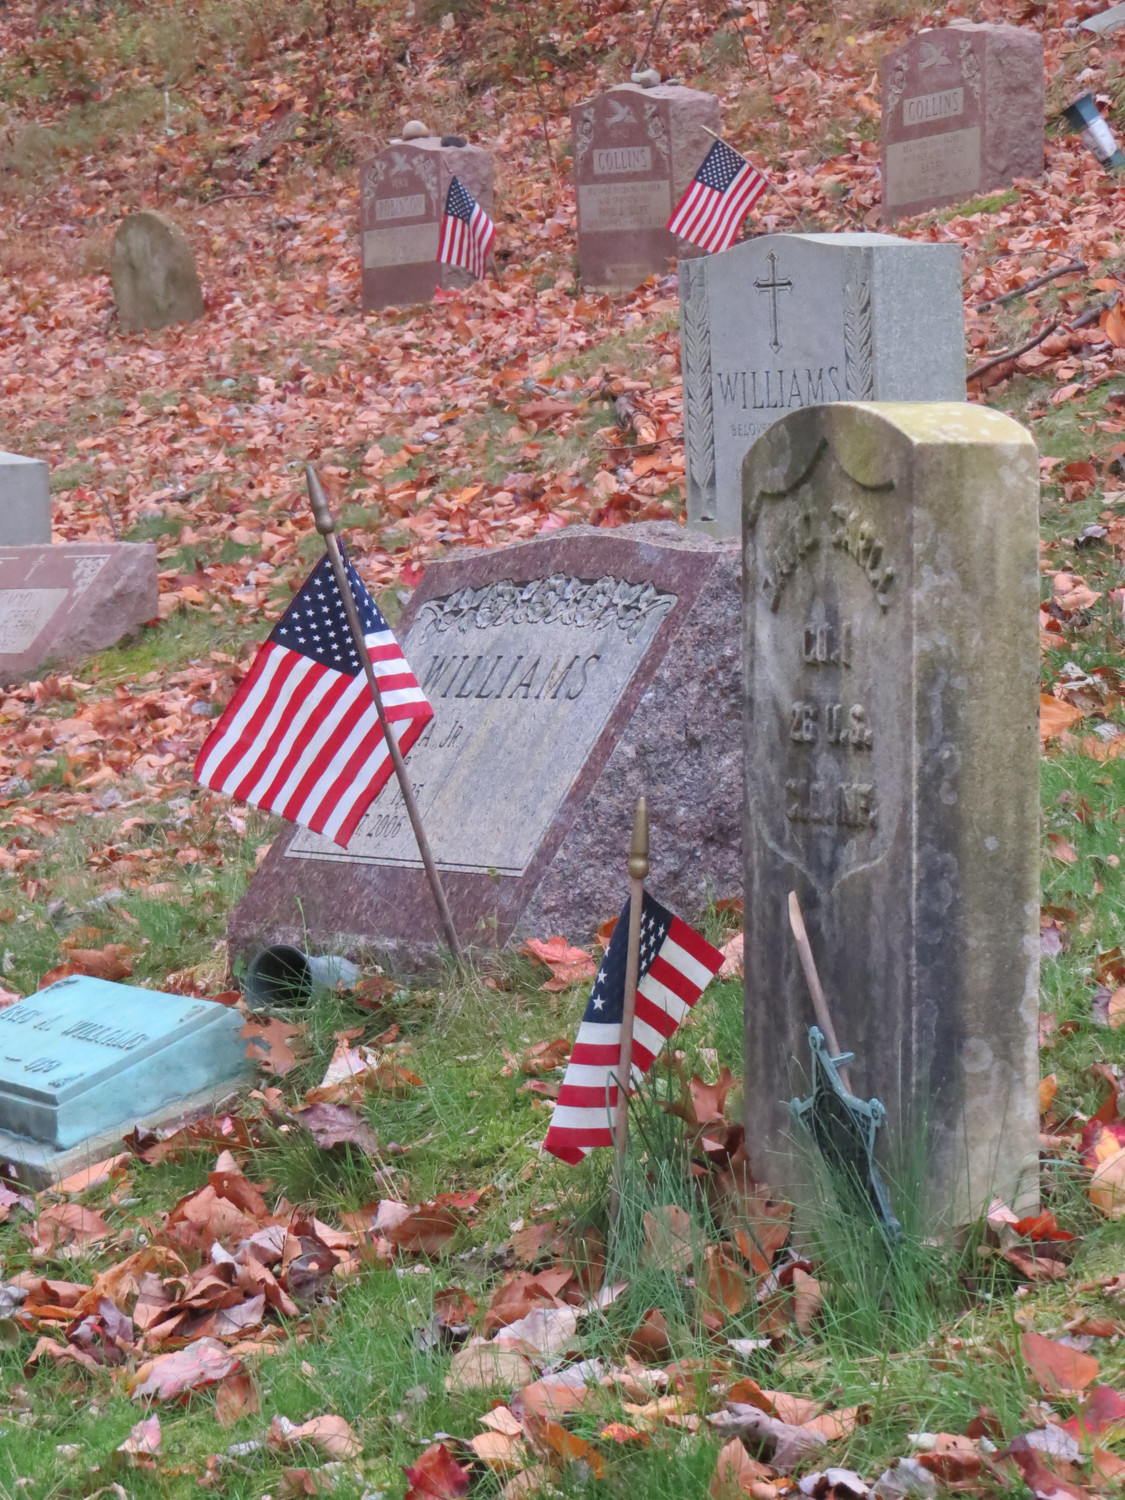 Civil War veteran David Carll's grave, right, sits next to those of other veterans at Pine Hollow.